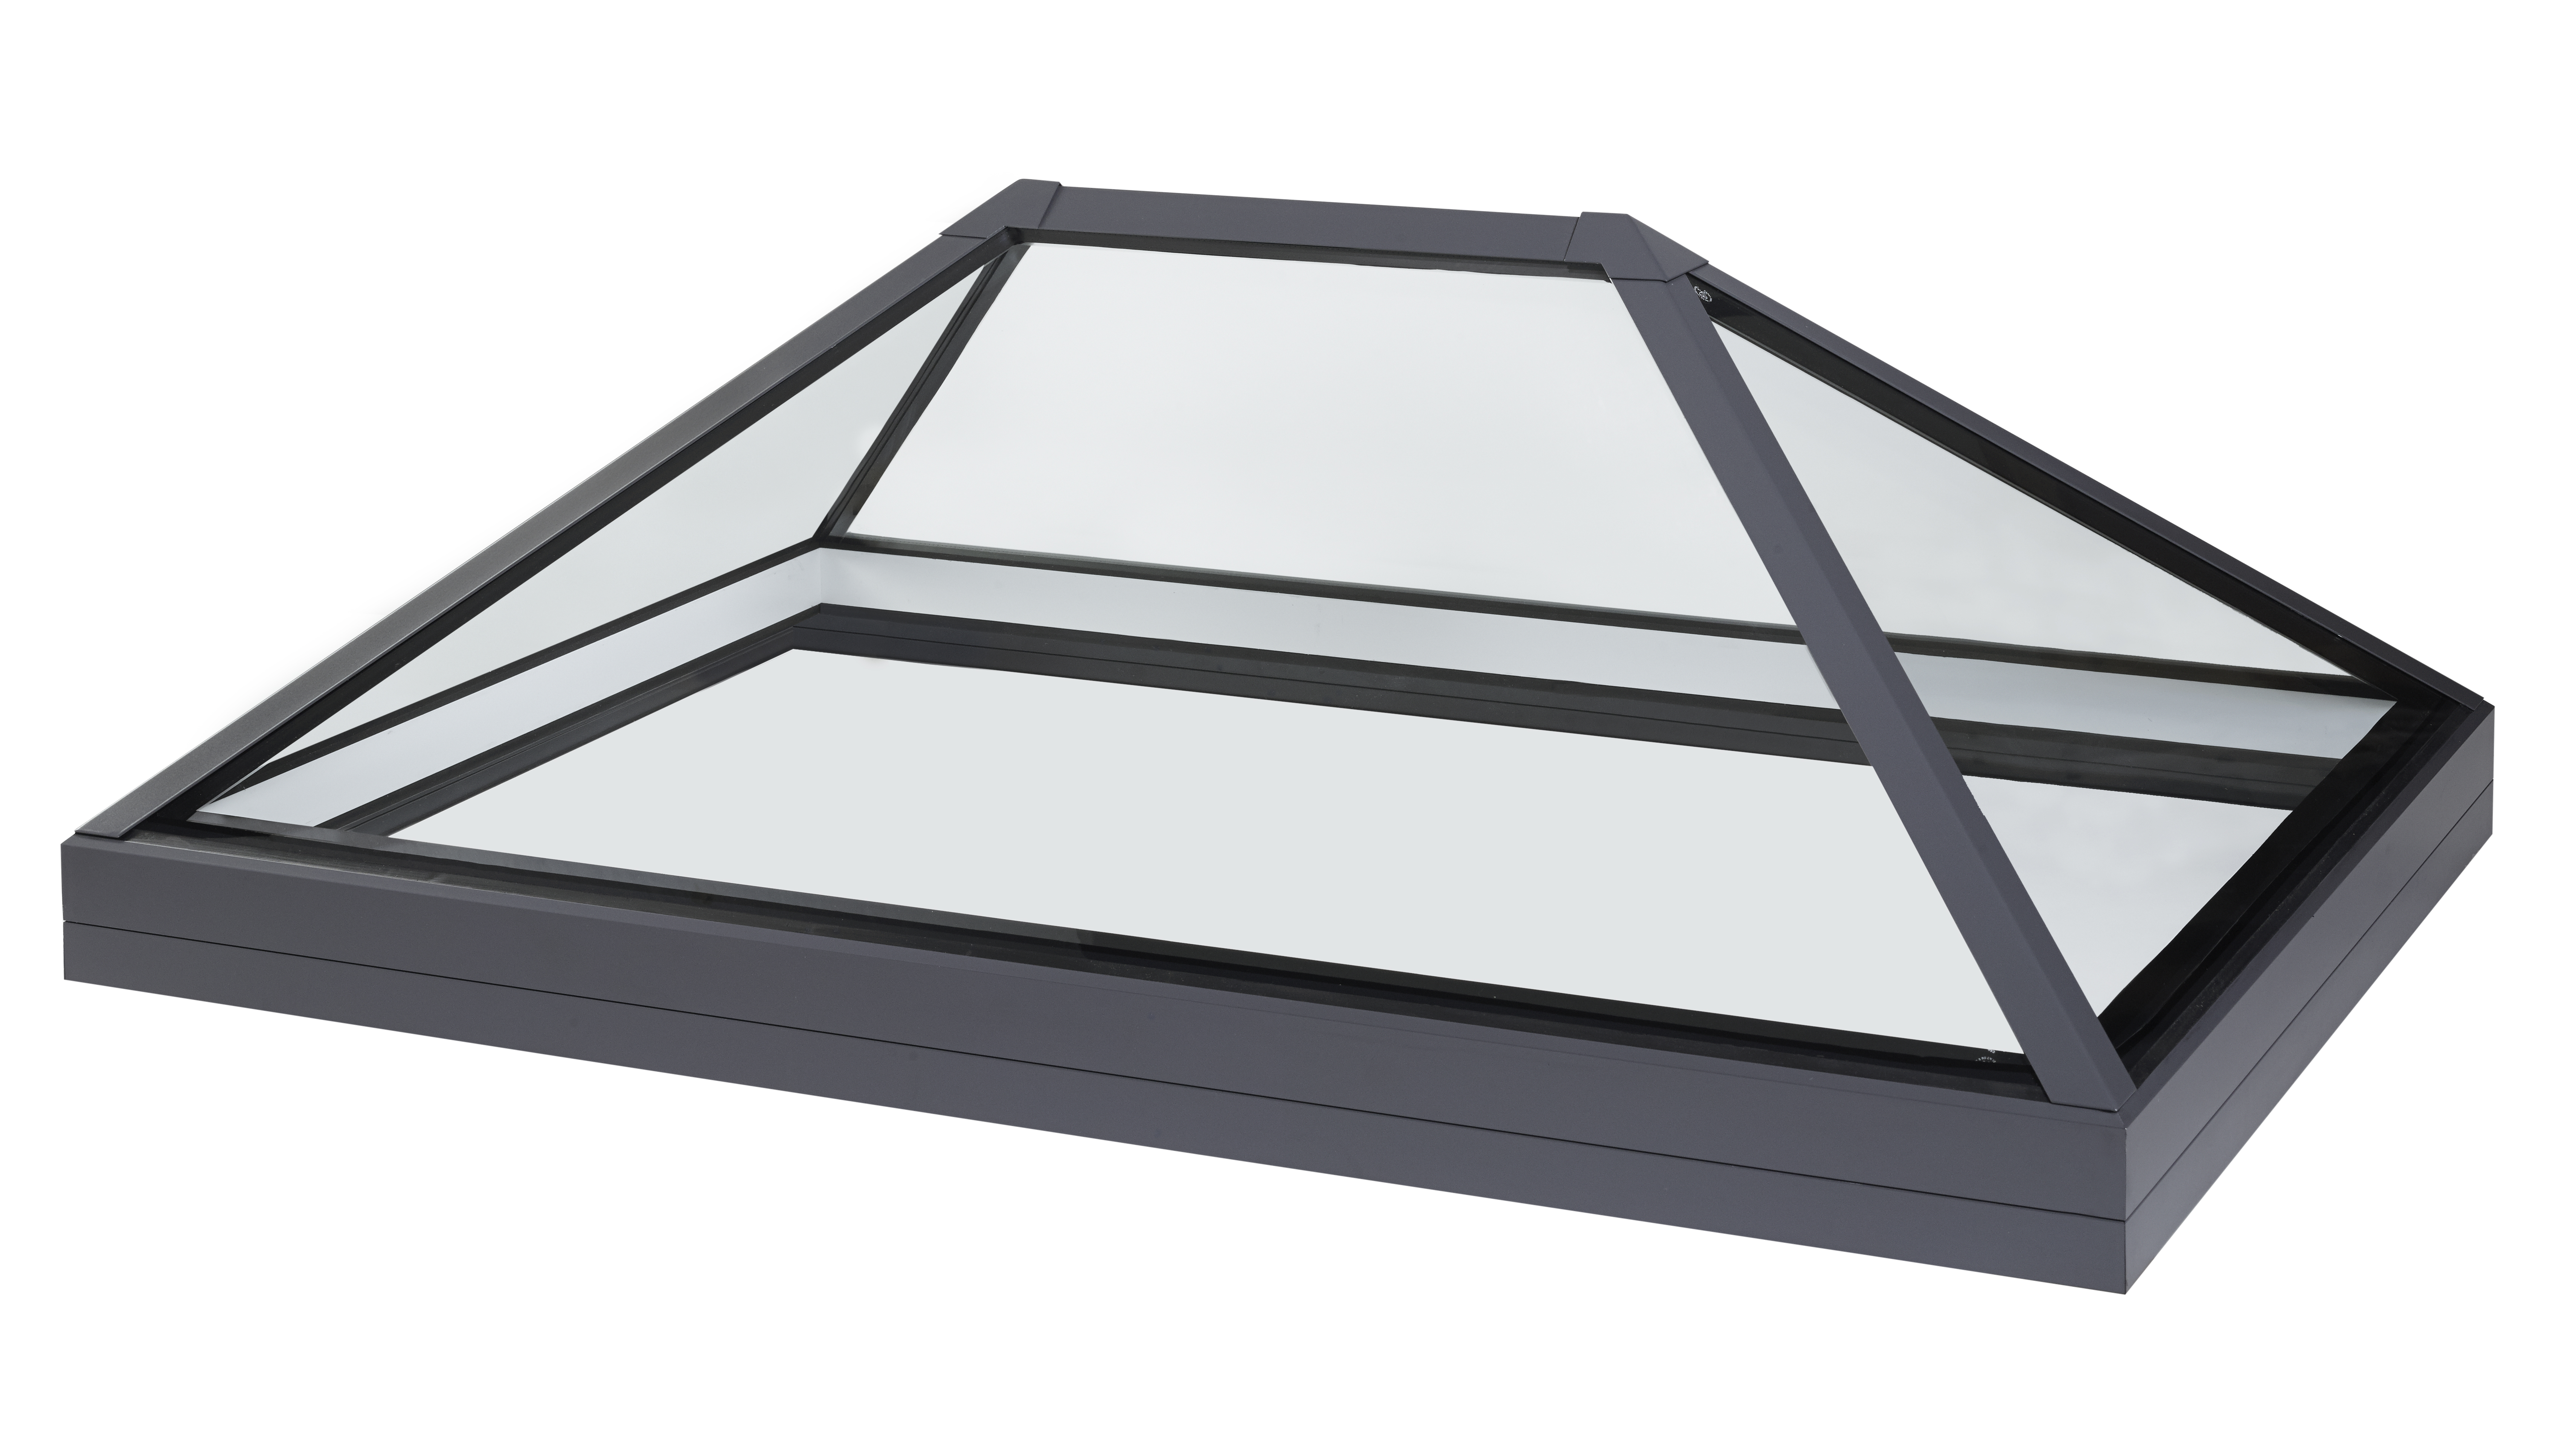 Roof Lanterns Roof Lantern Lantern Roof Lights Roof